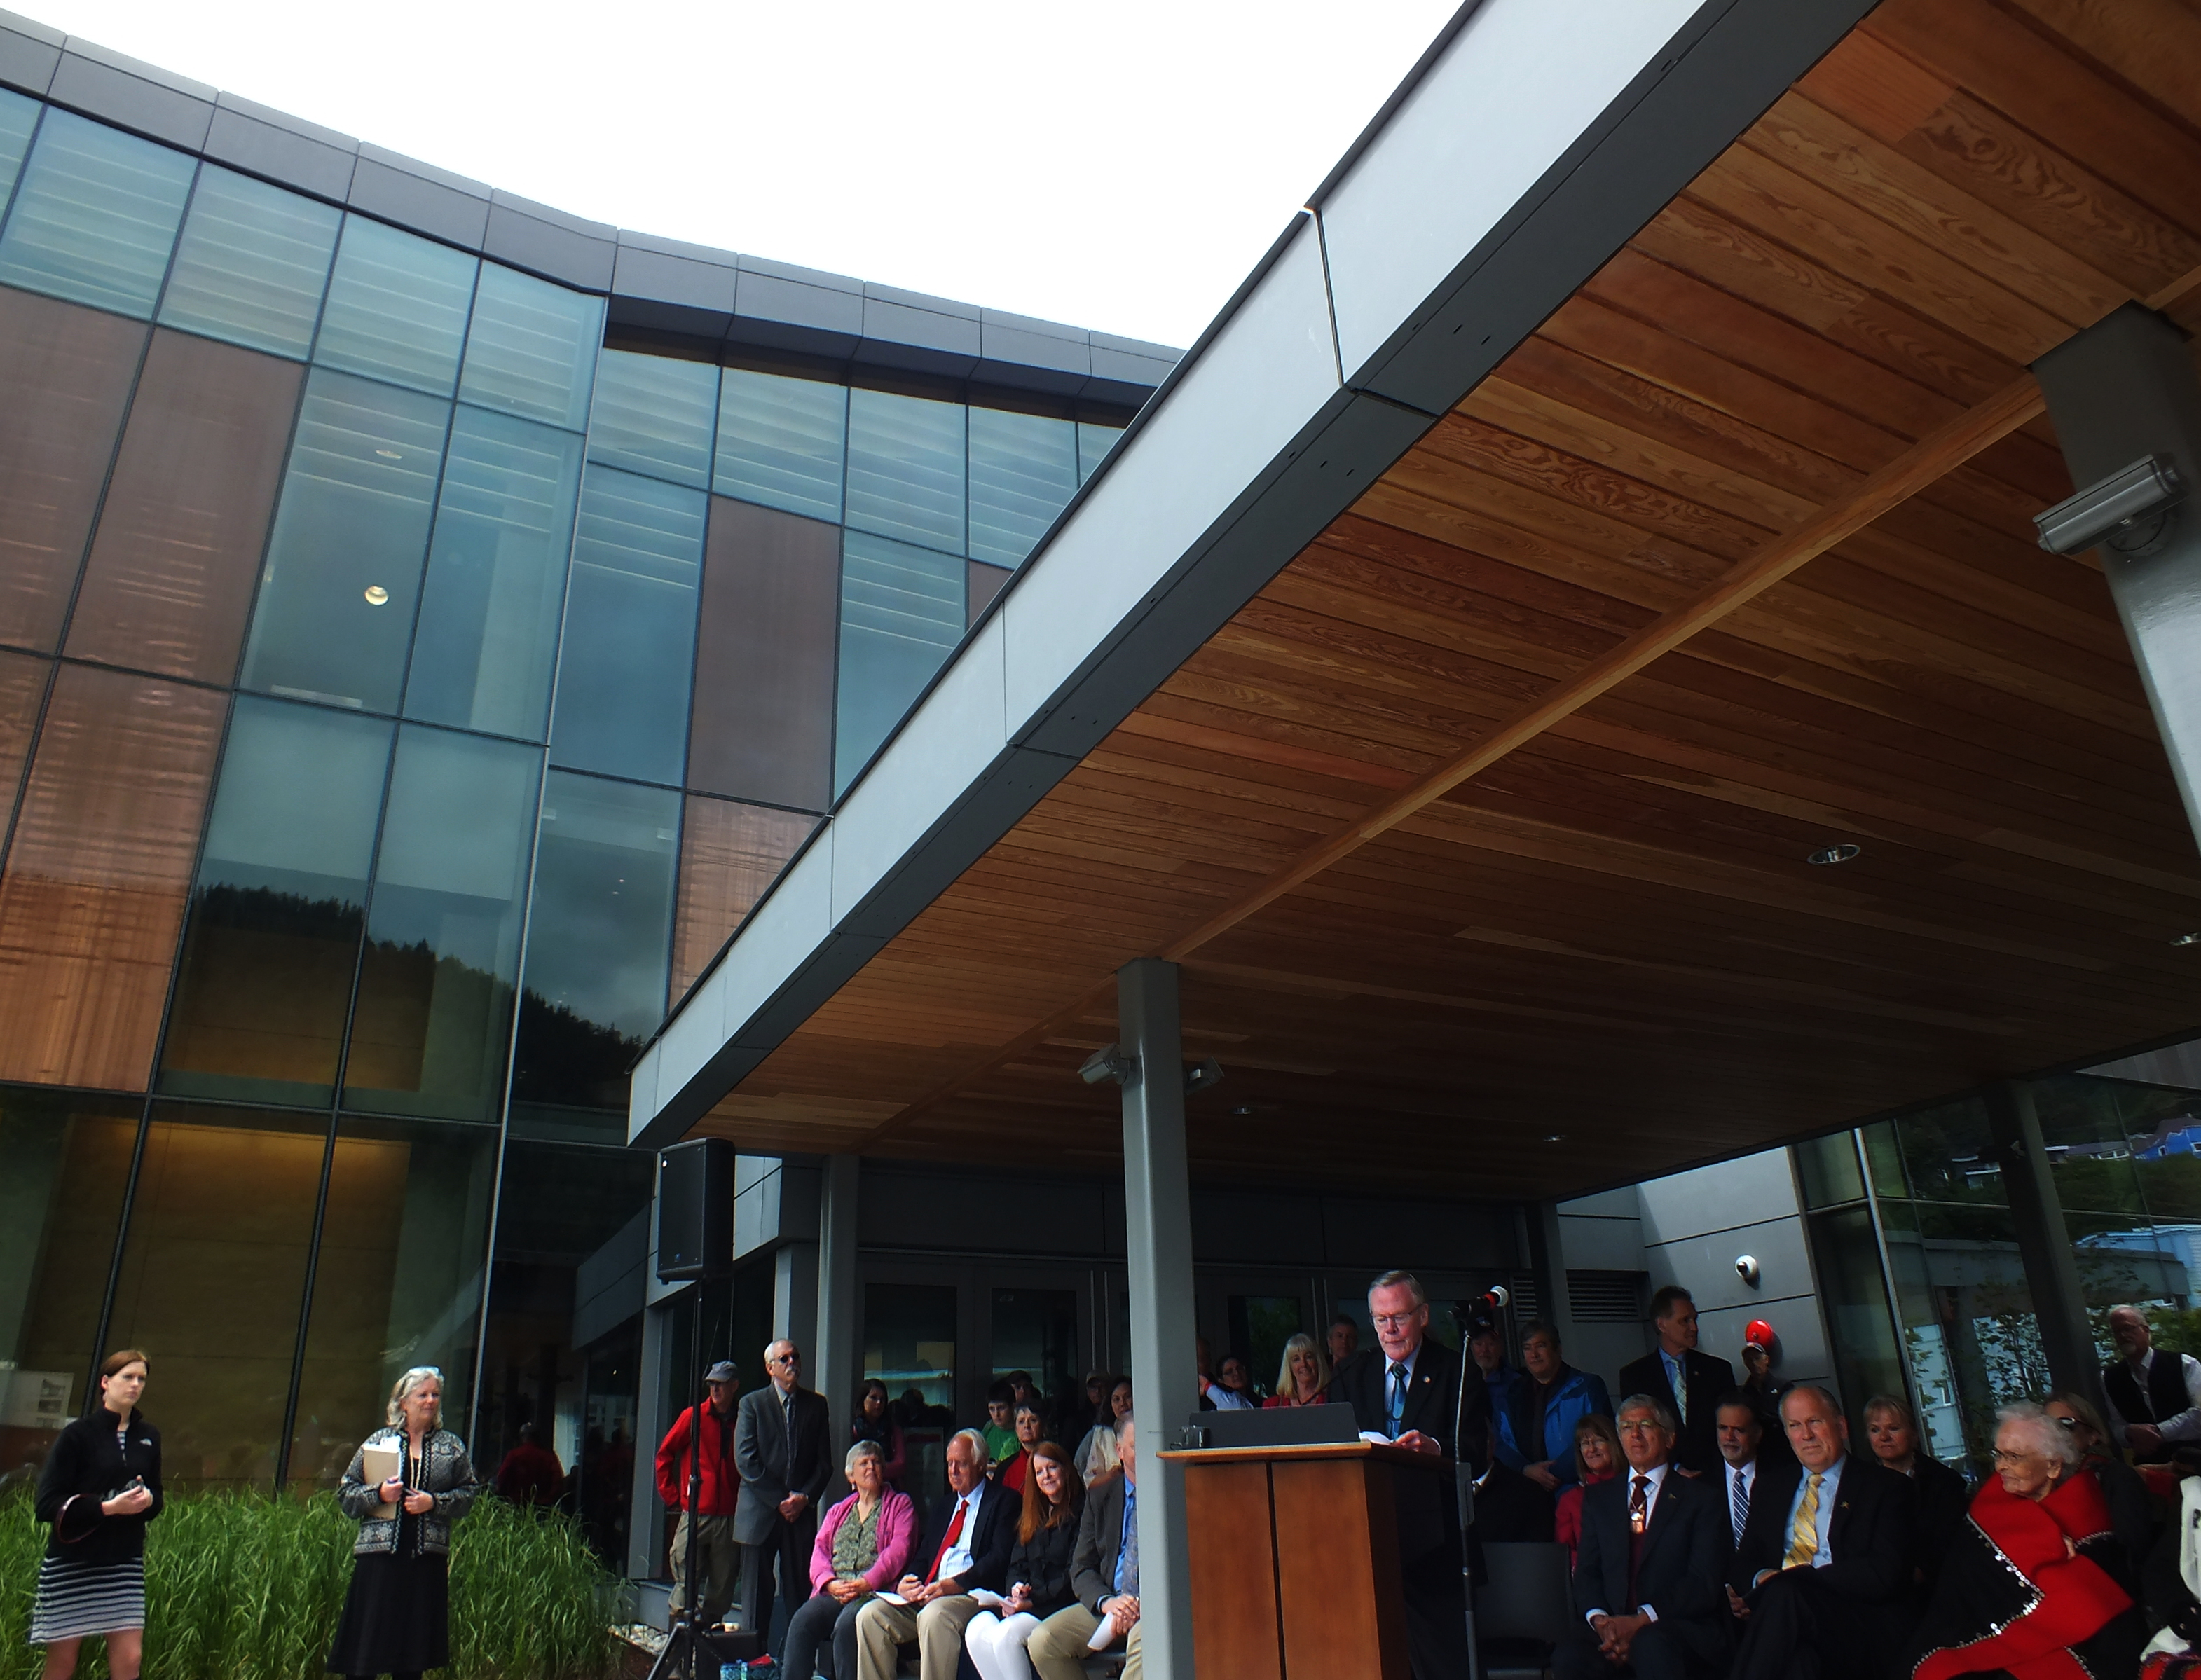 Juneau Sen. Dennis Egan addresses a crowd during the grand opening of the Father Andrew P. Kashevaroff Library, Archives and Museum on June 6, 2016. (Photo by Matt Miller, KTOO - Juneau)